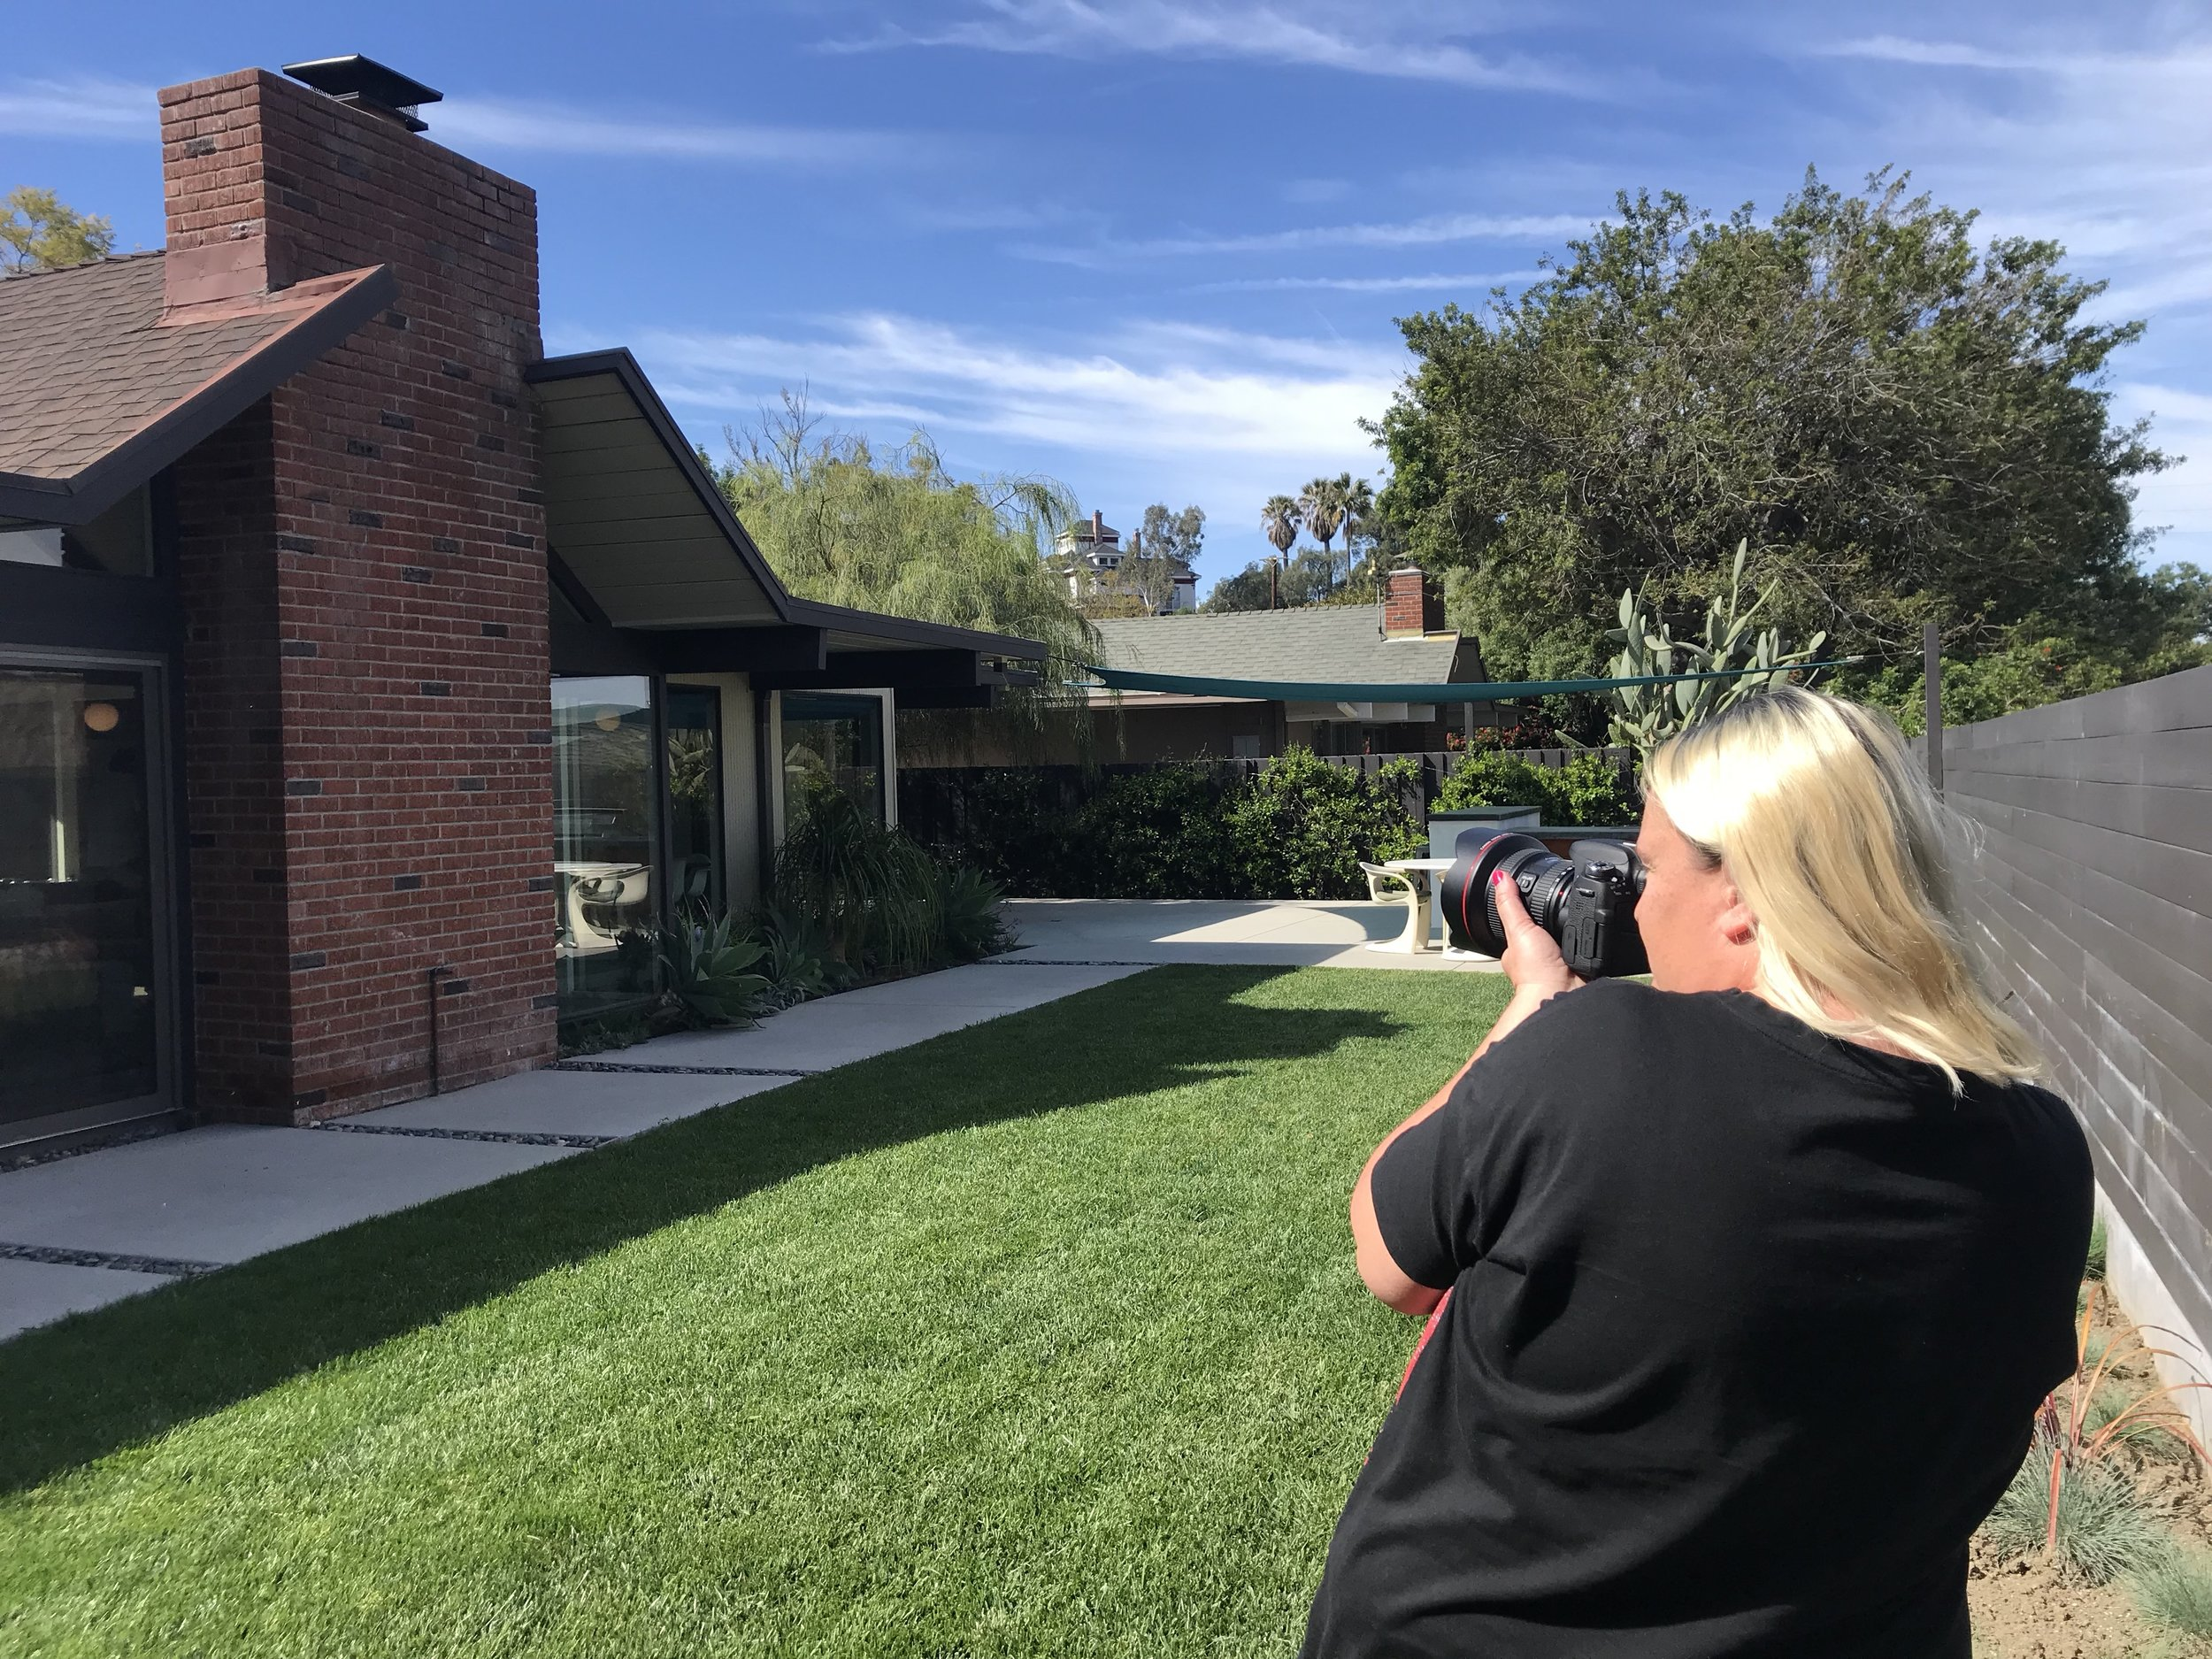 Valerie Smith, photographing features of the Orange Eichler homes